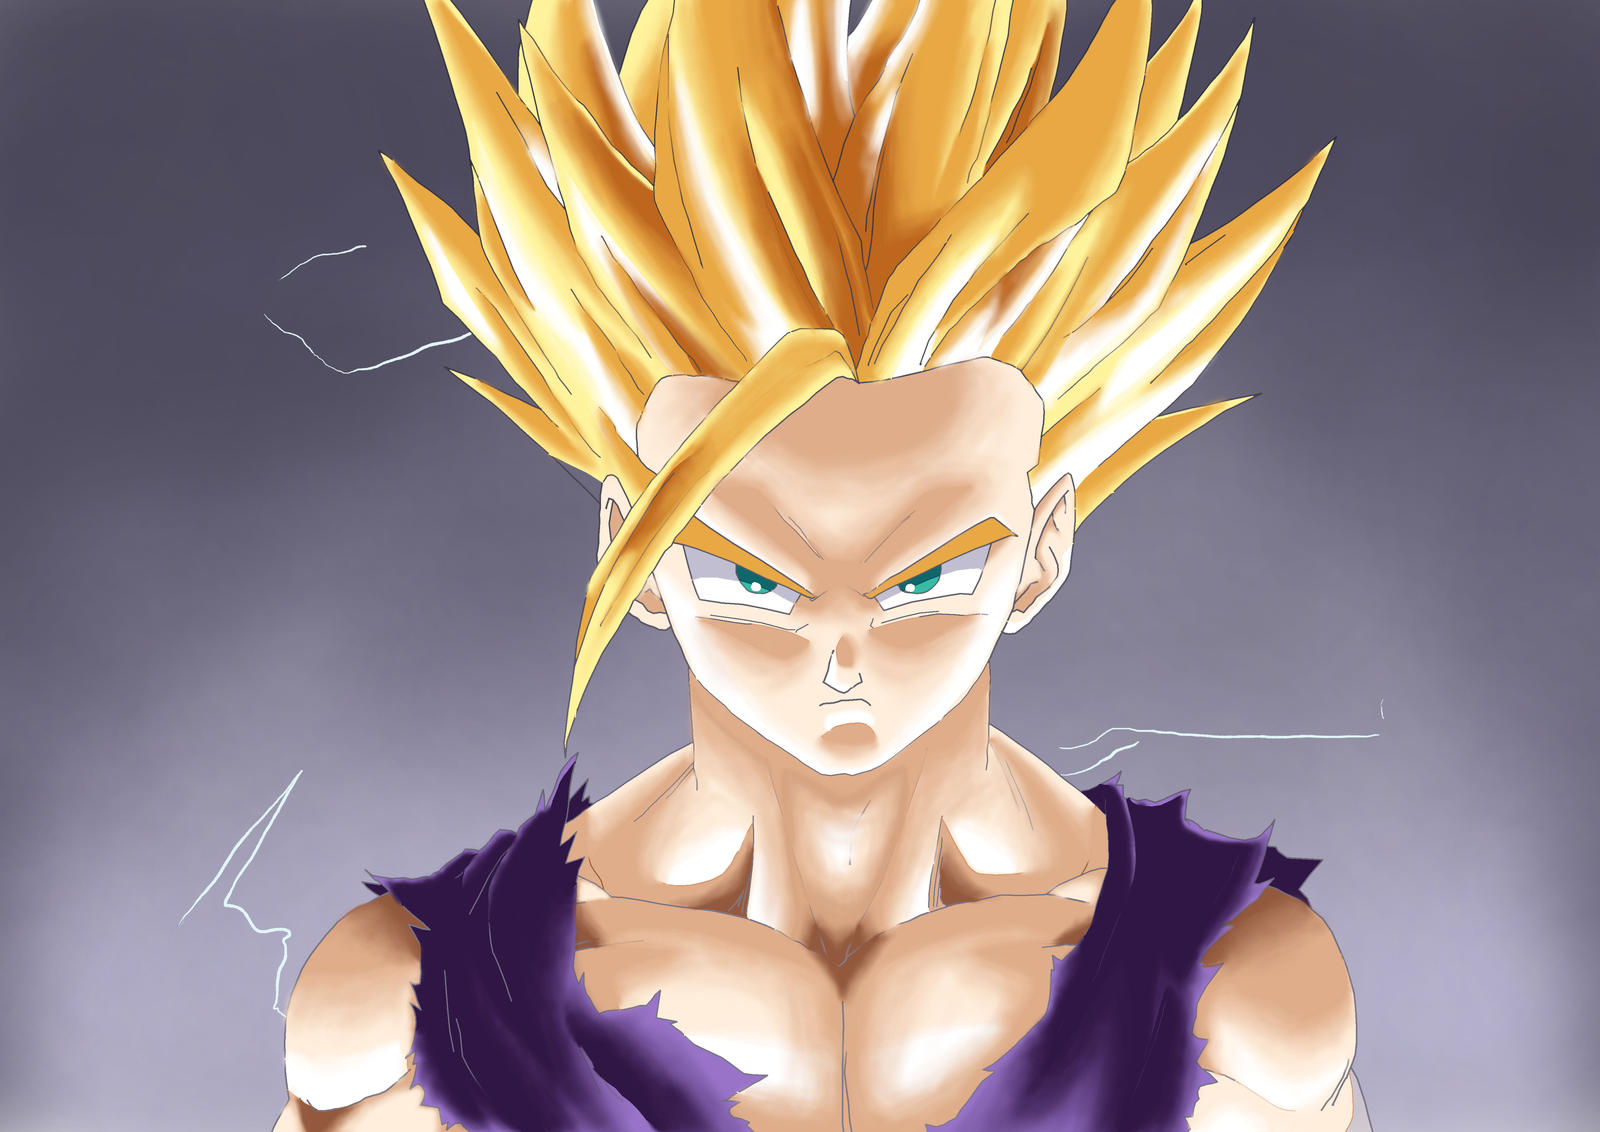 Teen gohan dragon ball super saiyan by thonolanmp on - Teen gohan wallpaper ...